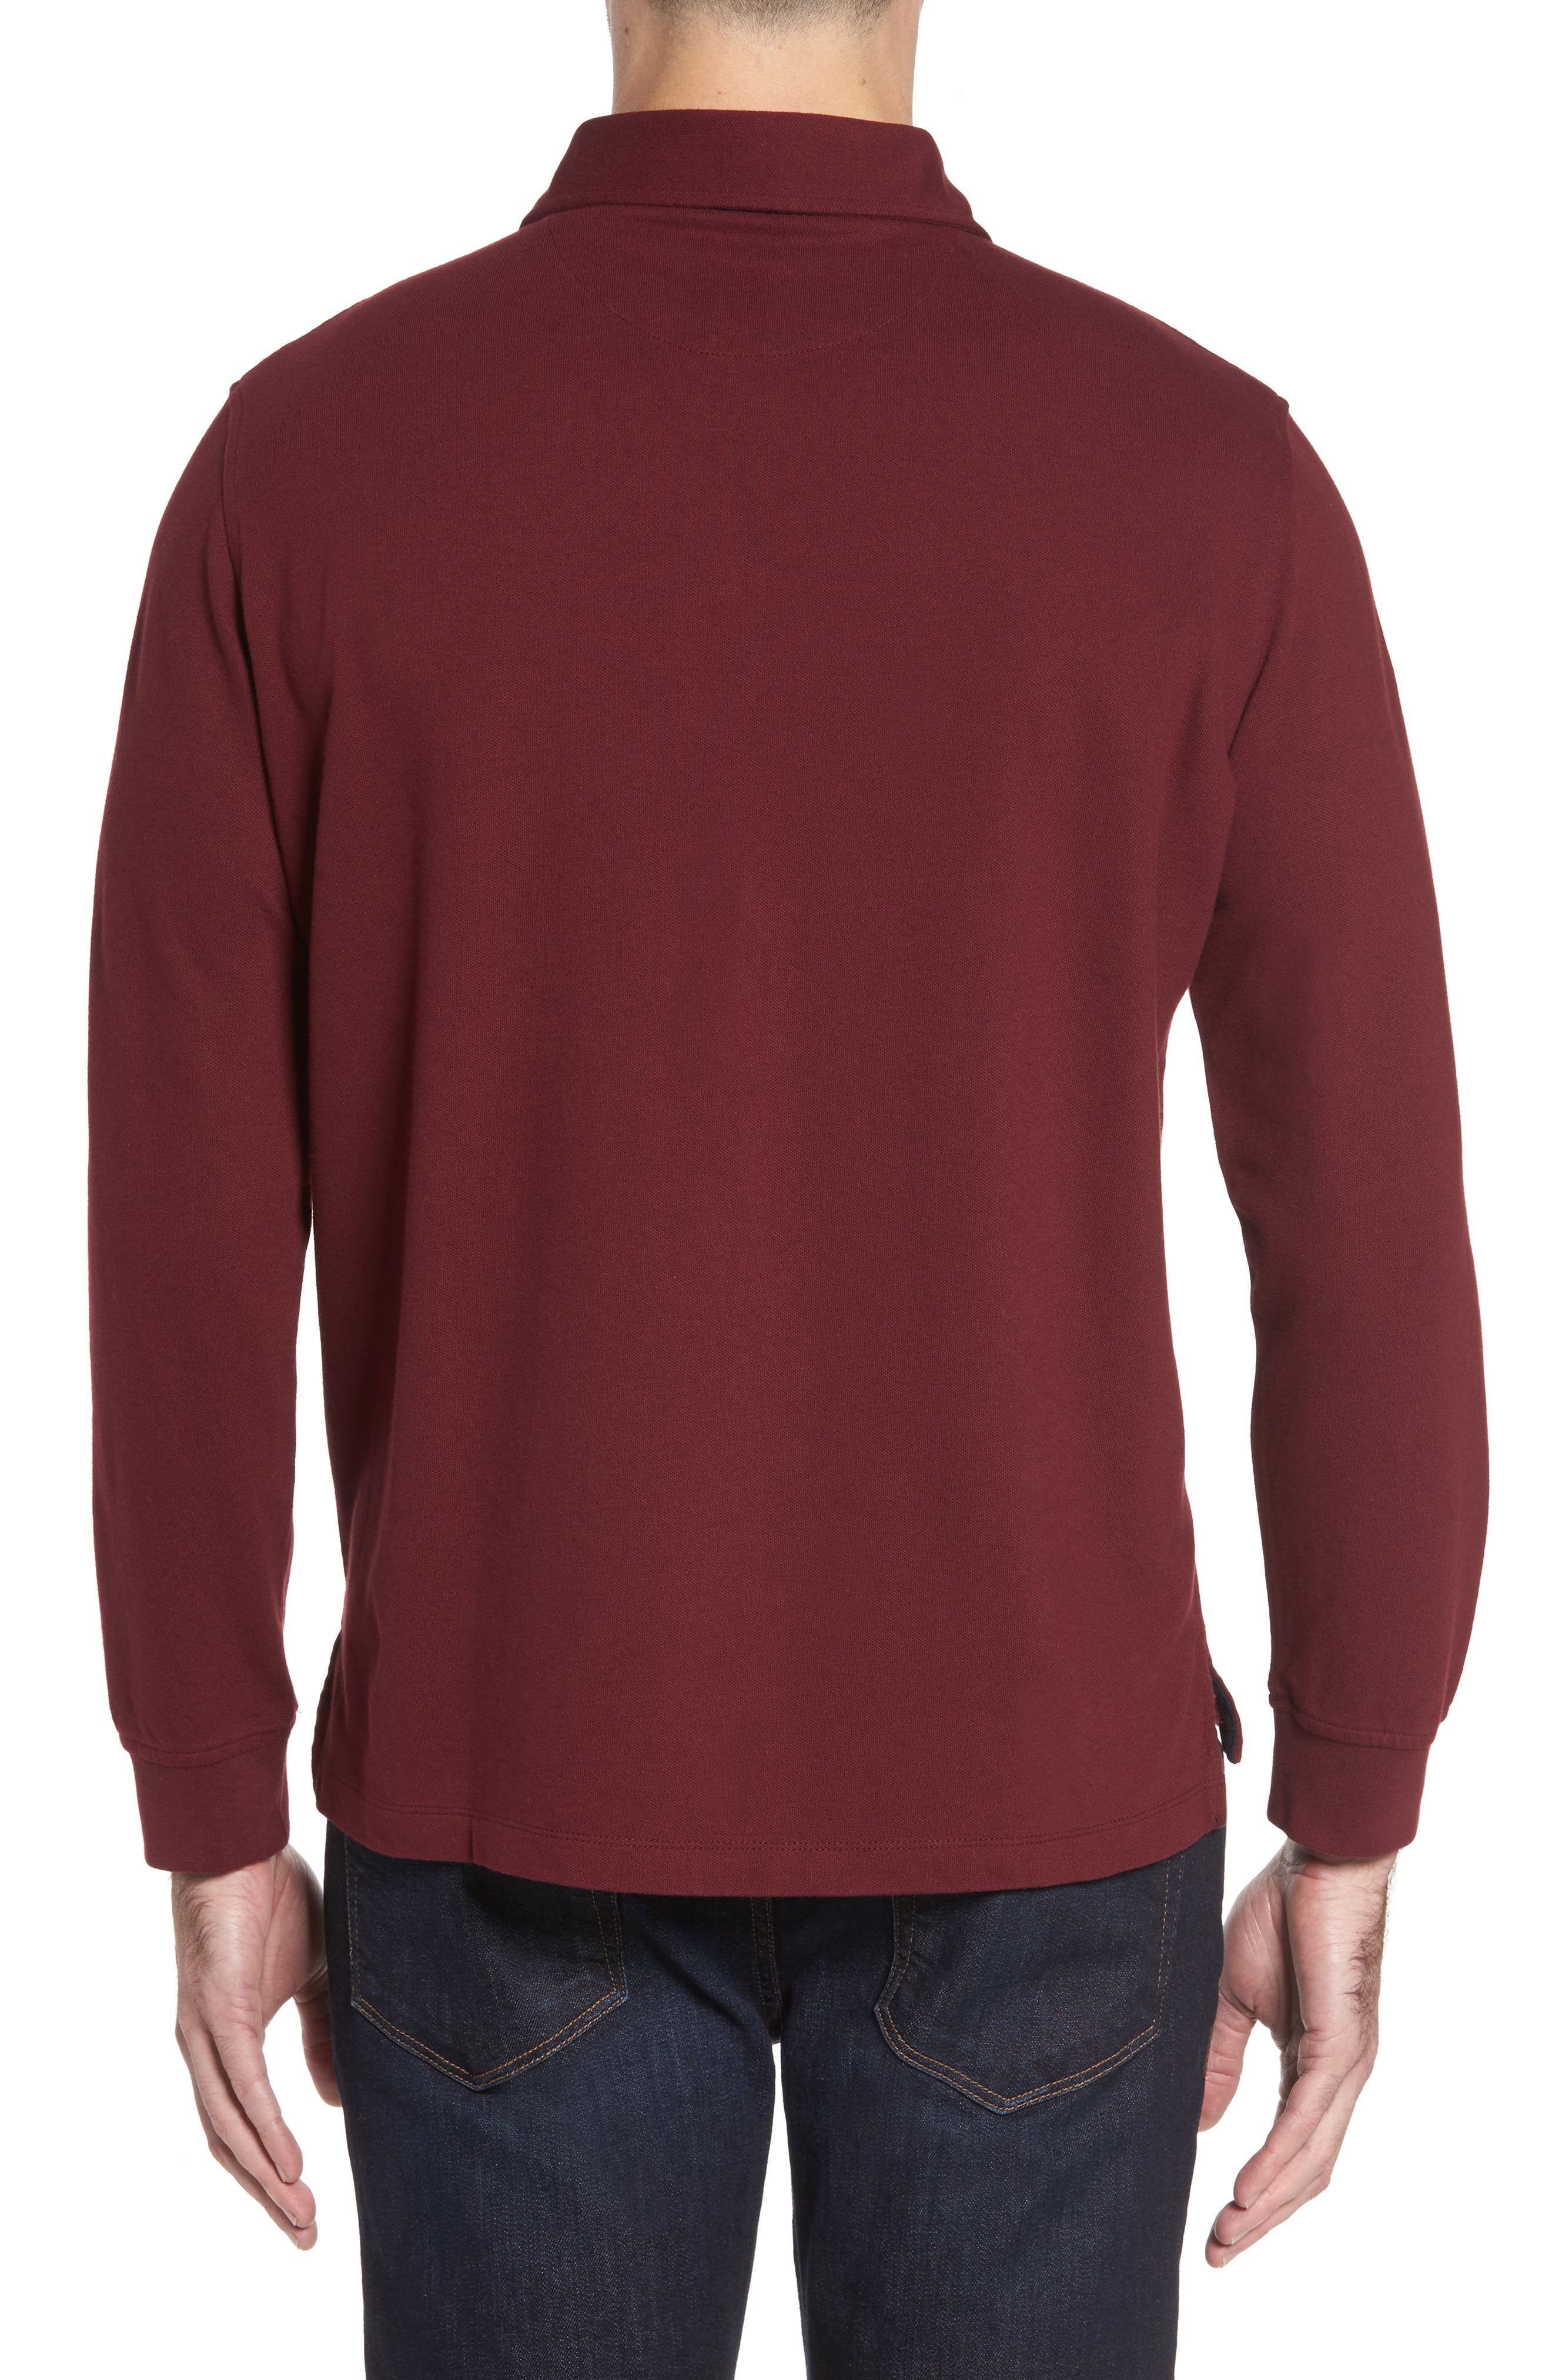 Alternate Image 2  - TailorByrd Two-Tone Piqué Knit Polo